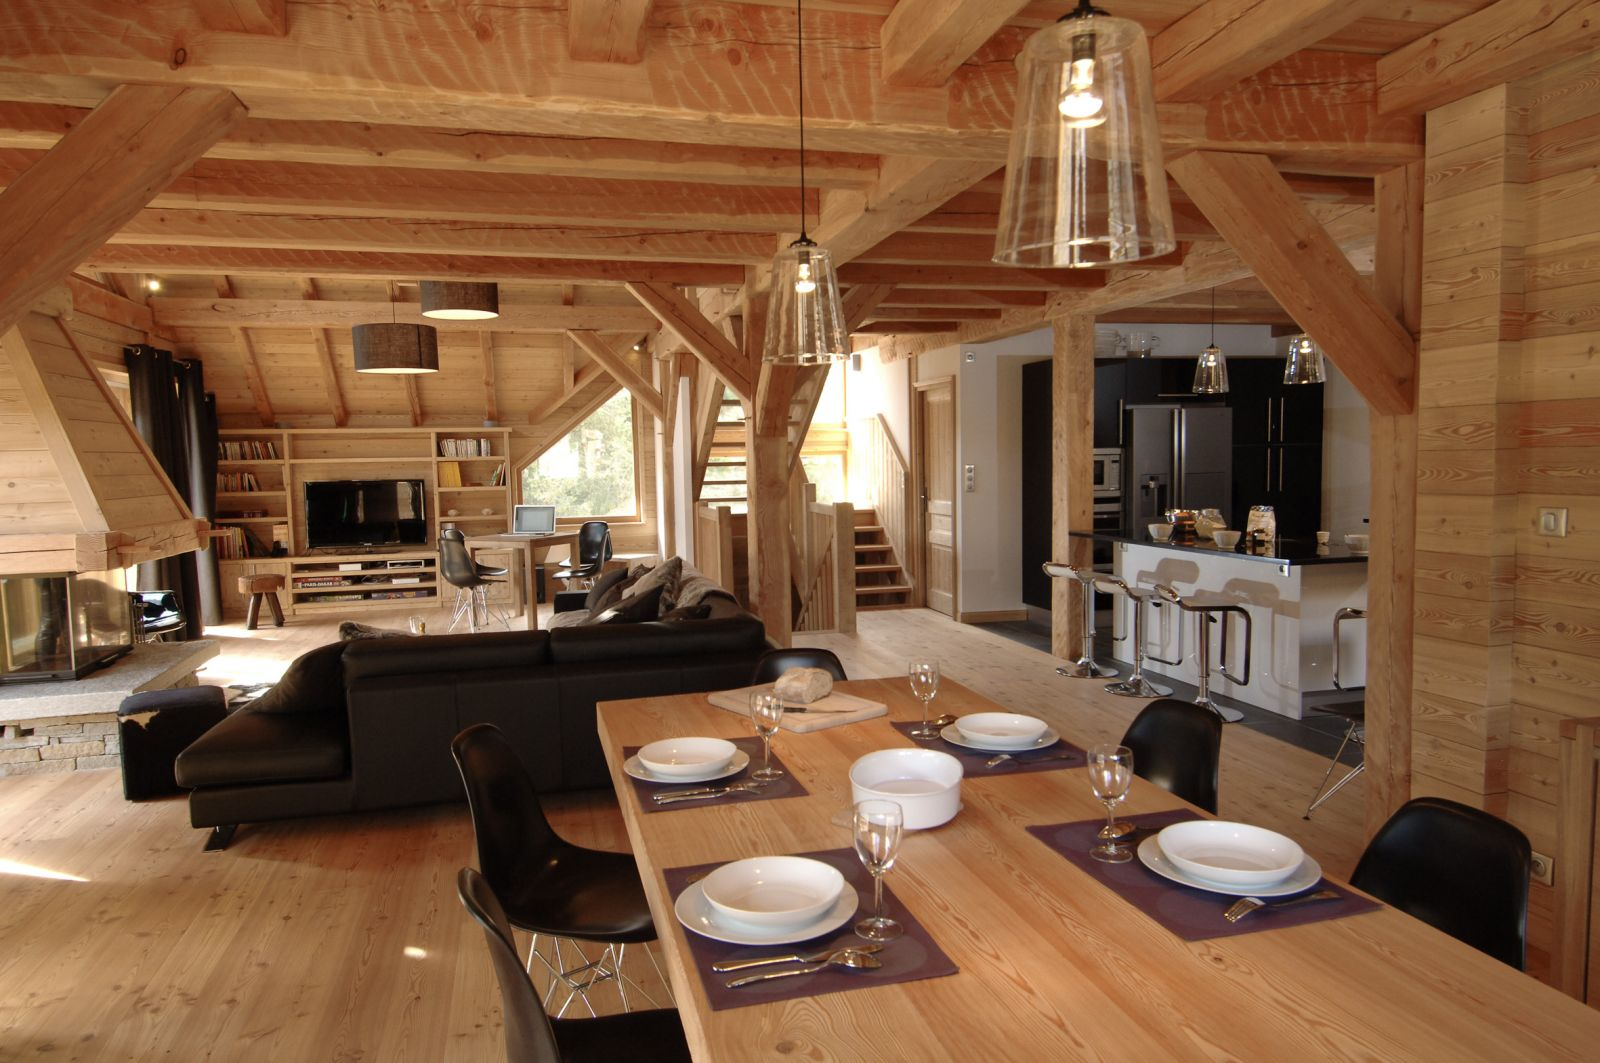 Chalet Prestige I Location de Chalets & Appartements avec Services ...